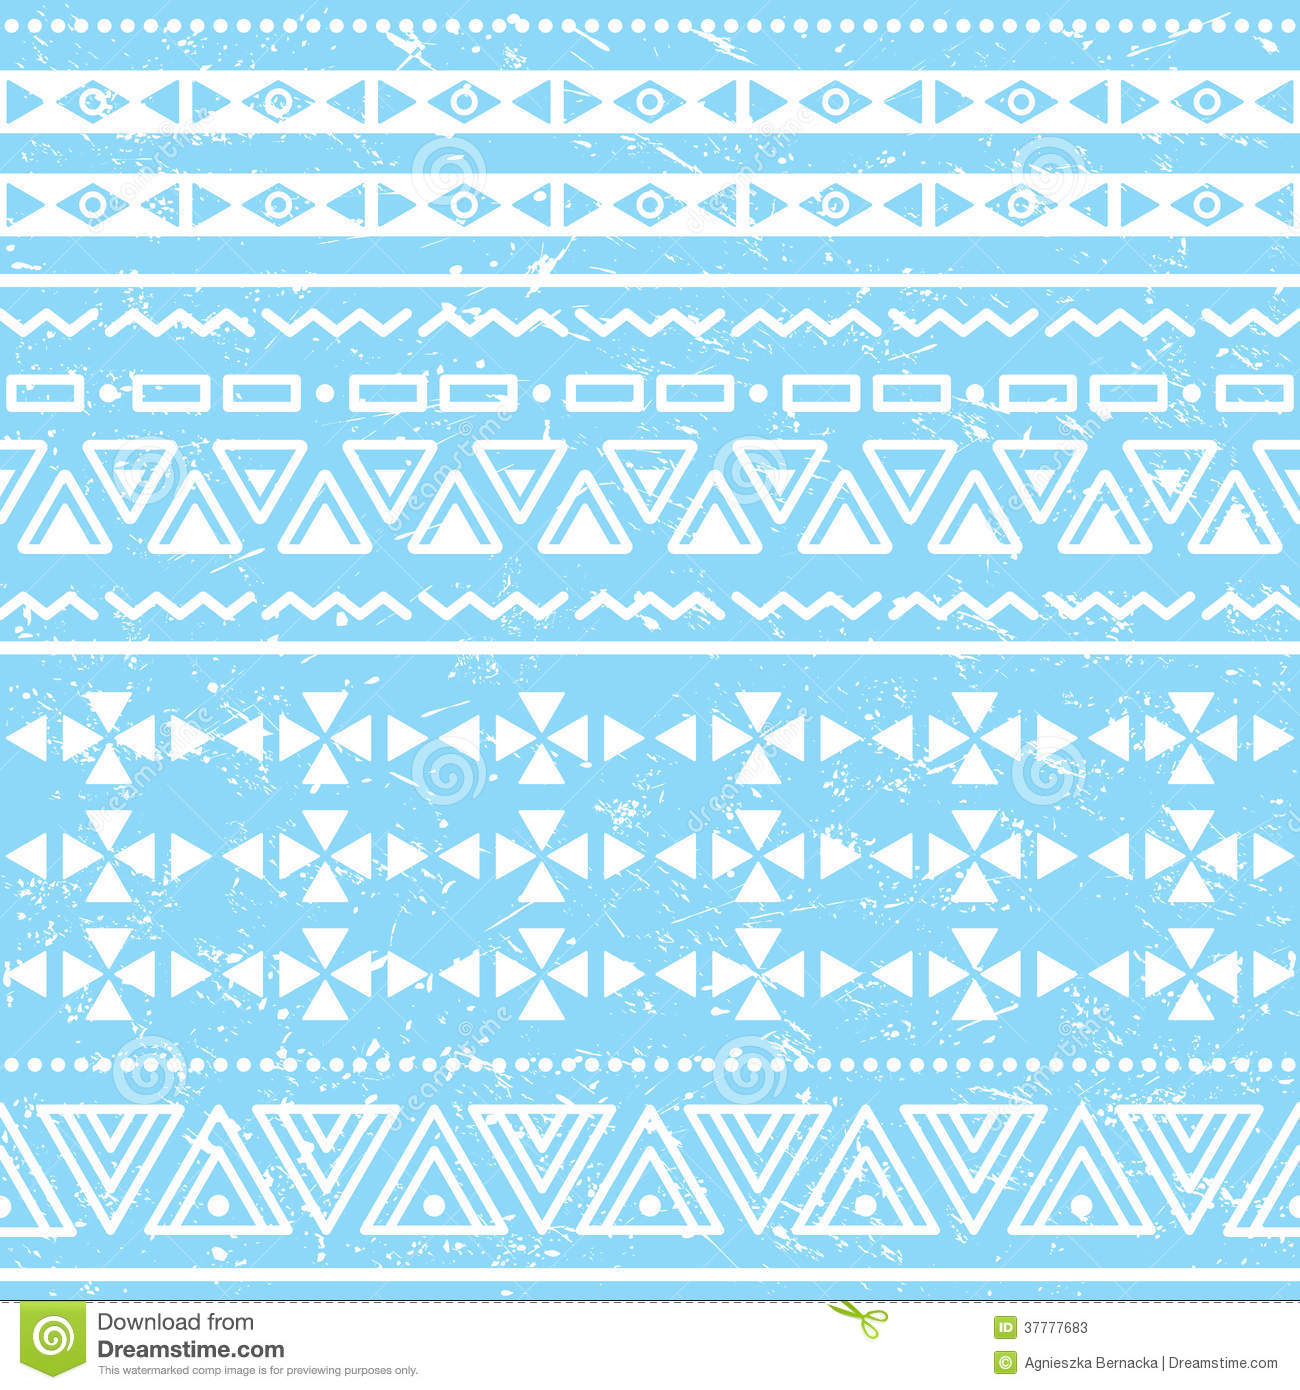 Blue tribal patterns tumblr background